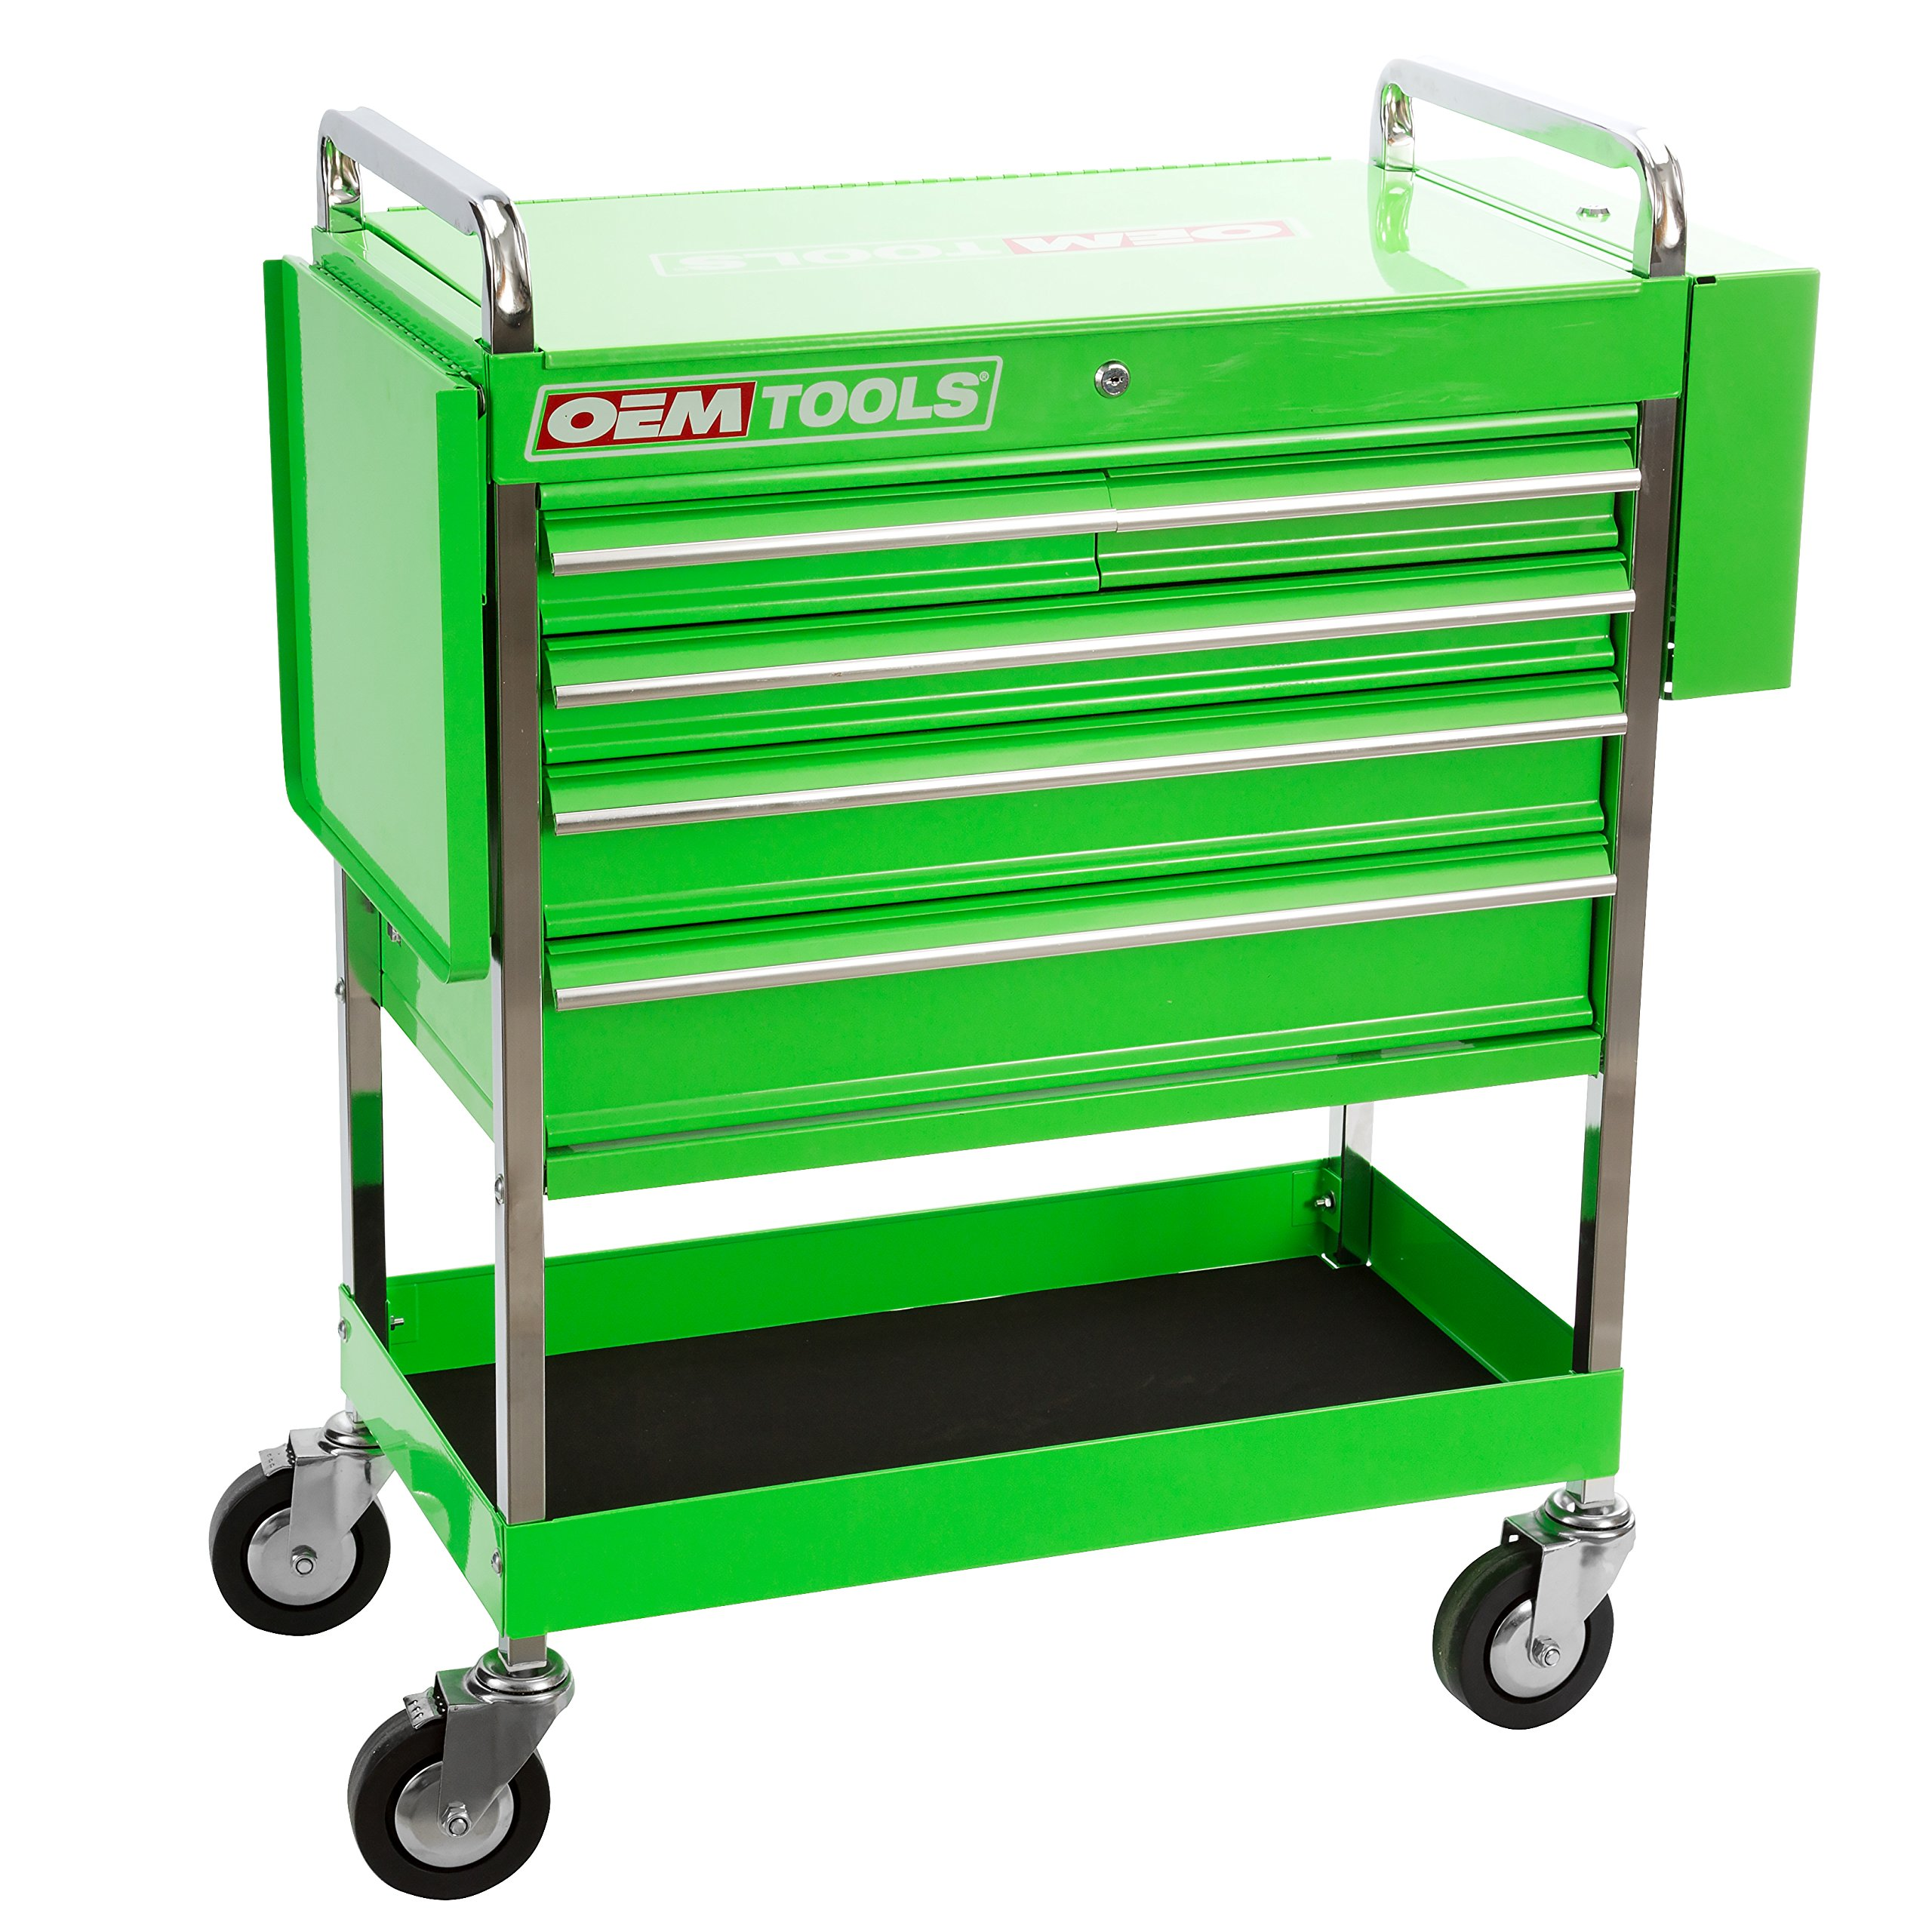 Professional Service Cart - 5 Drawer and 1 Tray (Green) by OEMTOOLS